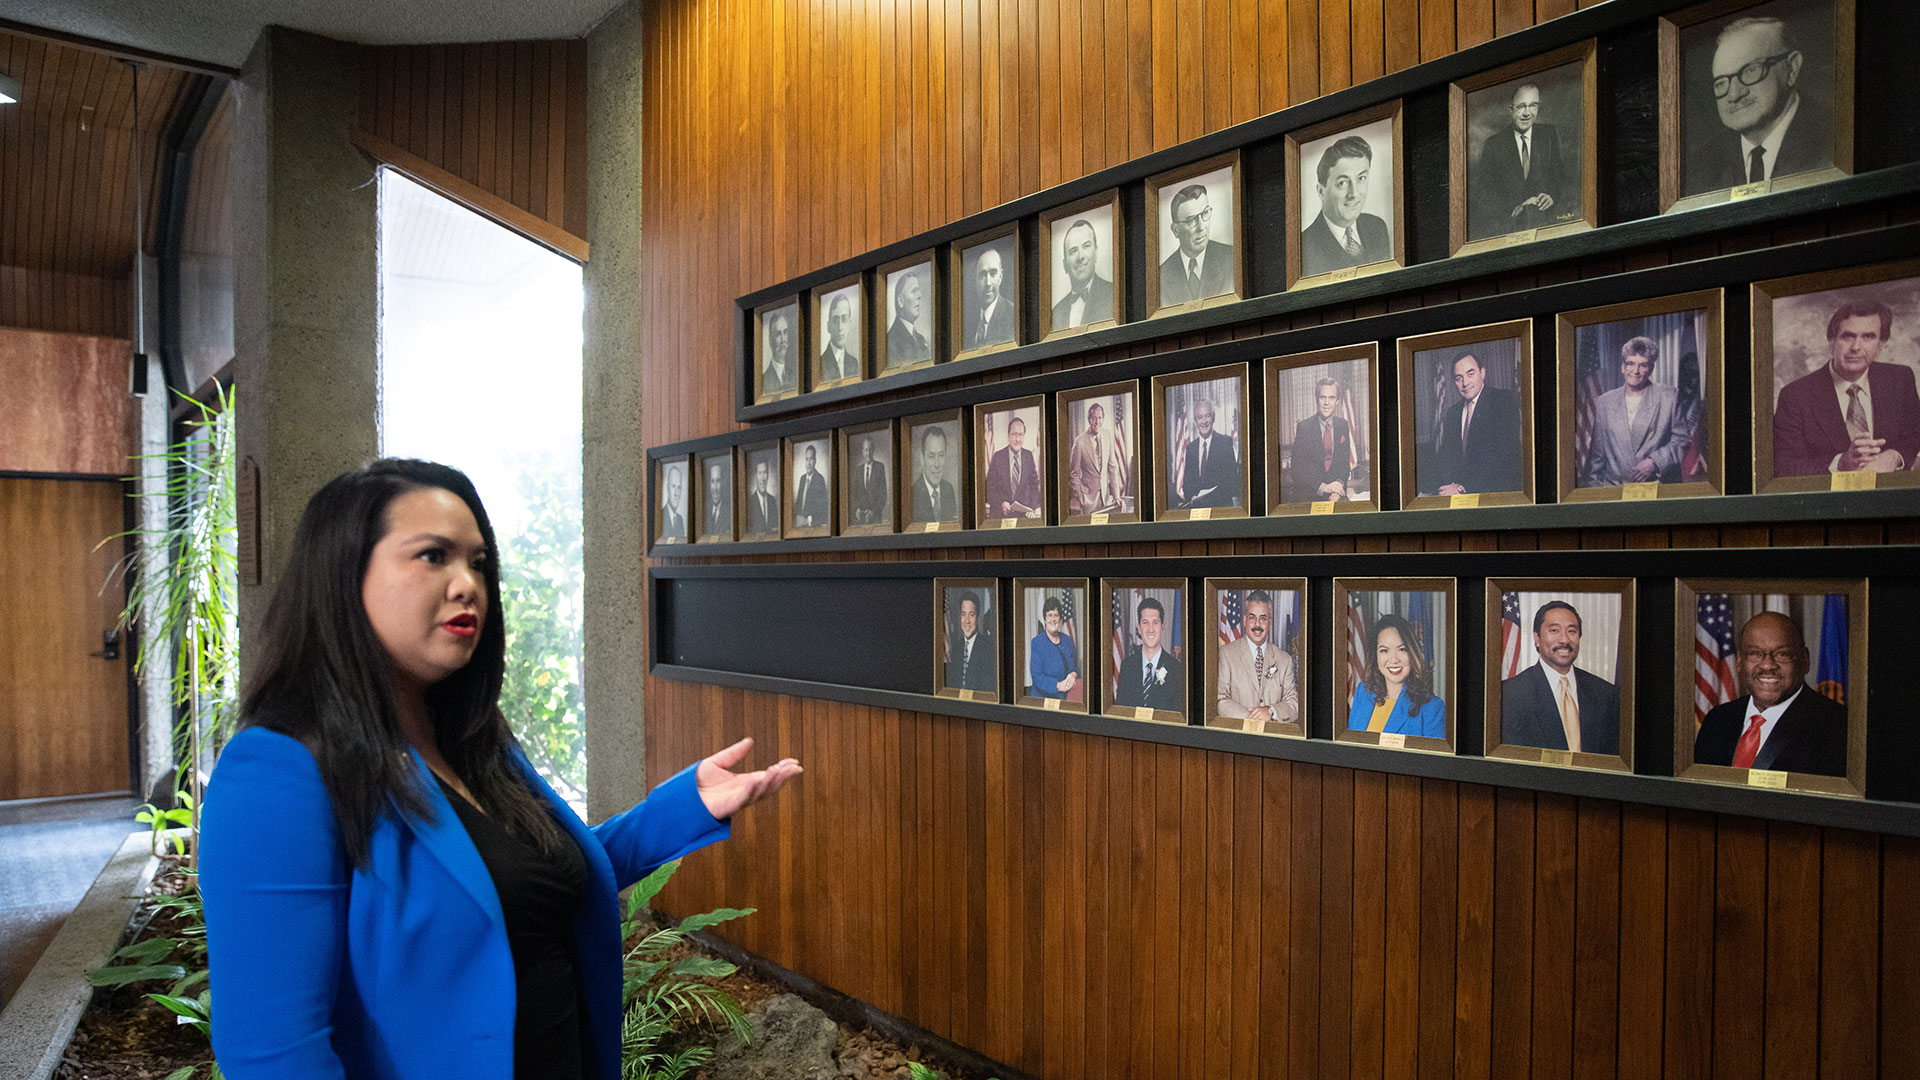 Daly City Mayor Juslyn Manalo points to a wall of past mayors on the wall of City Hall. For many years white men dominated, but more recently the city's diverse community is represented here too.